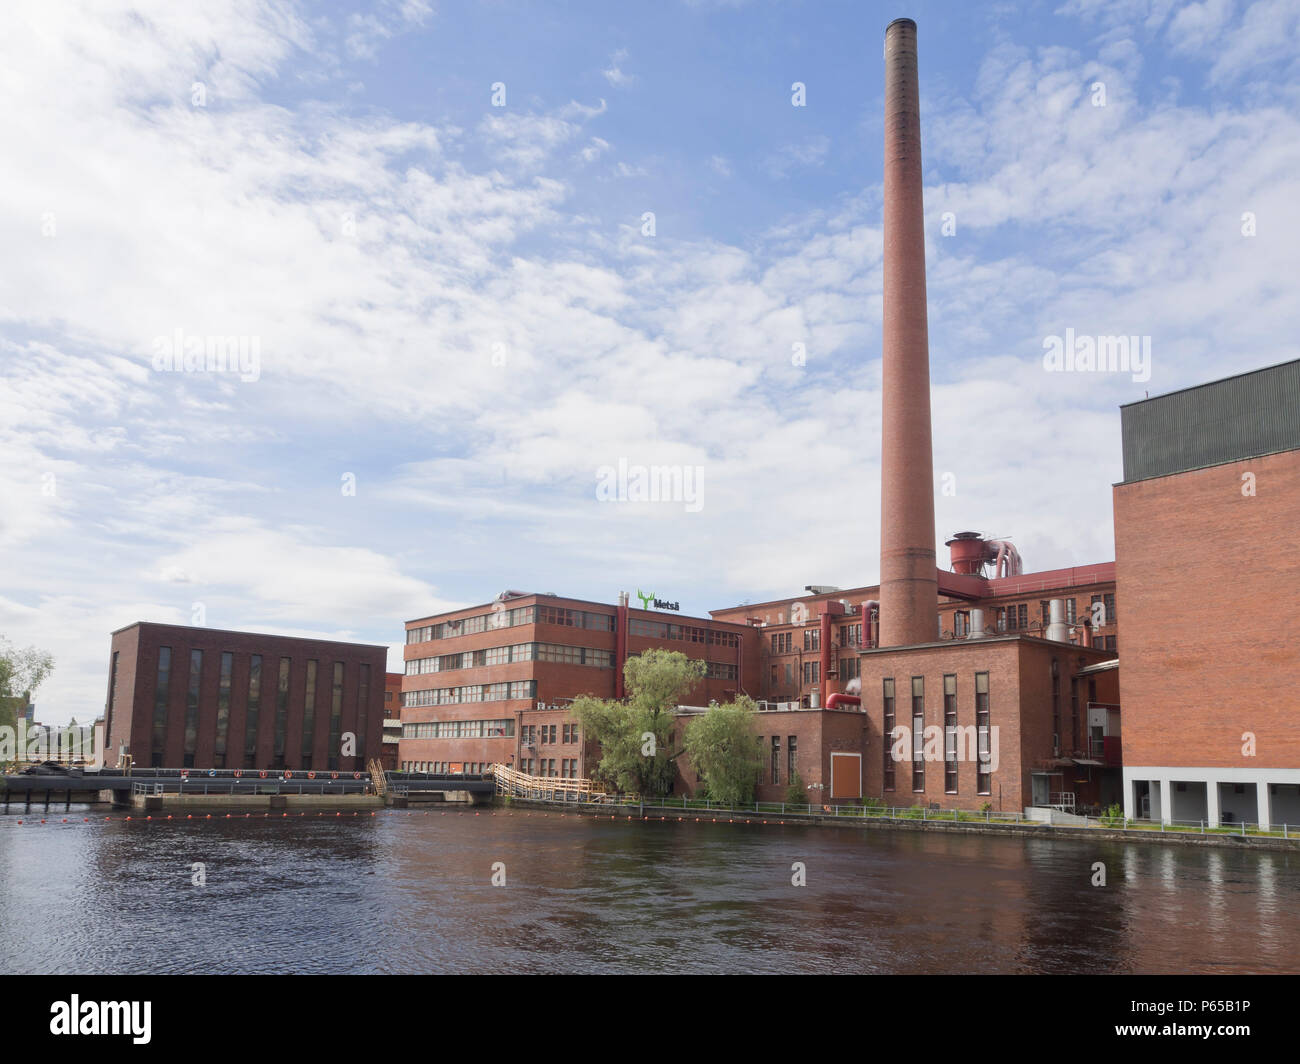 The old power station and industrial architecture along the Tammeroski river in Tampere Finland Stock Photo